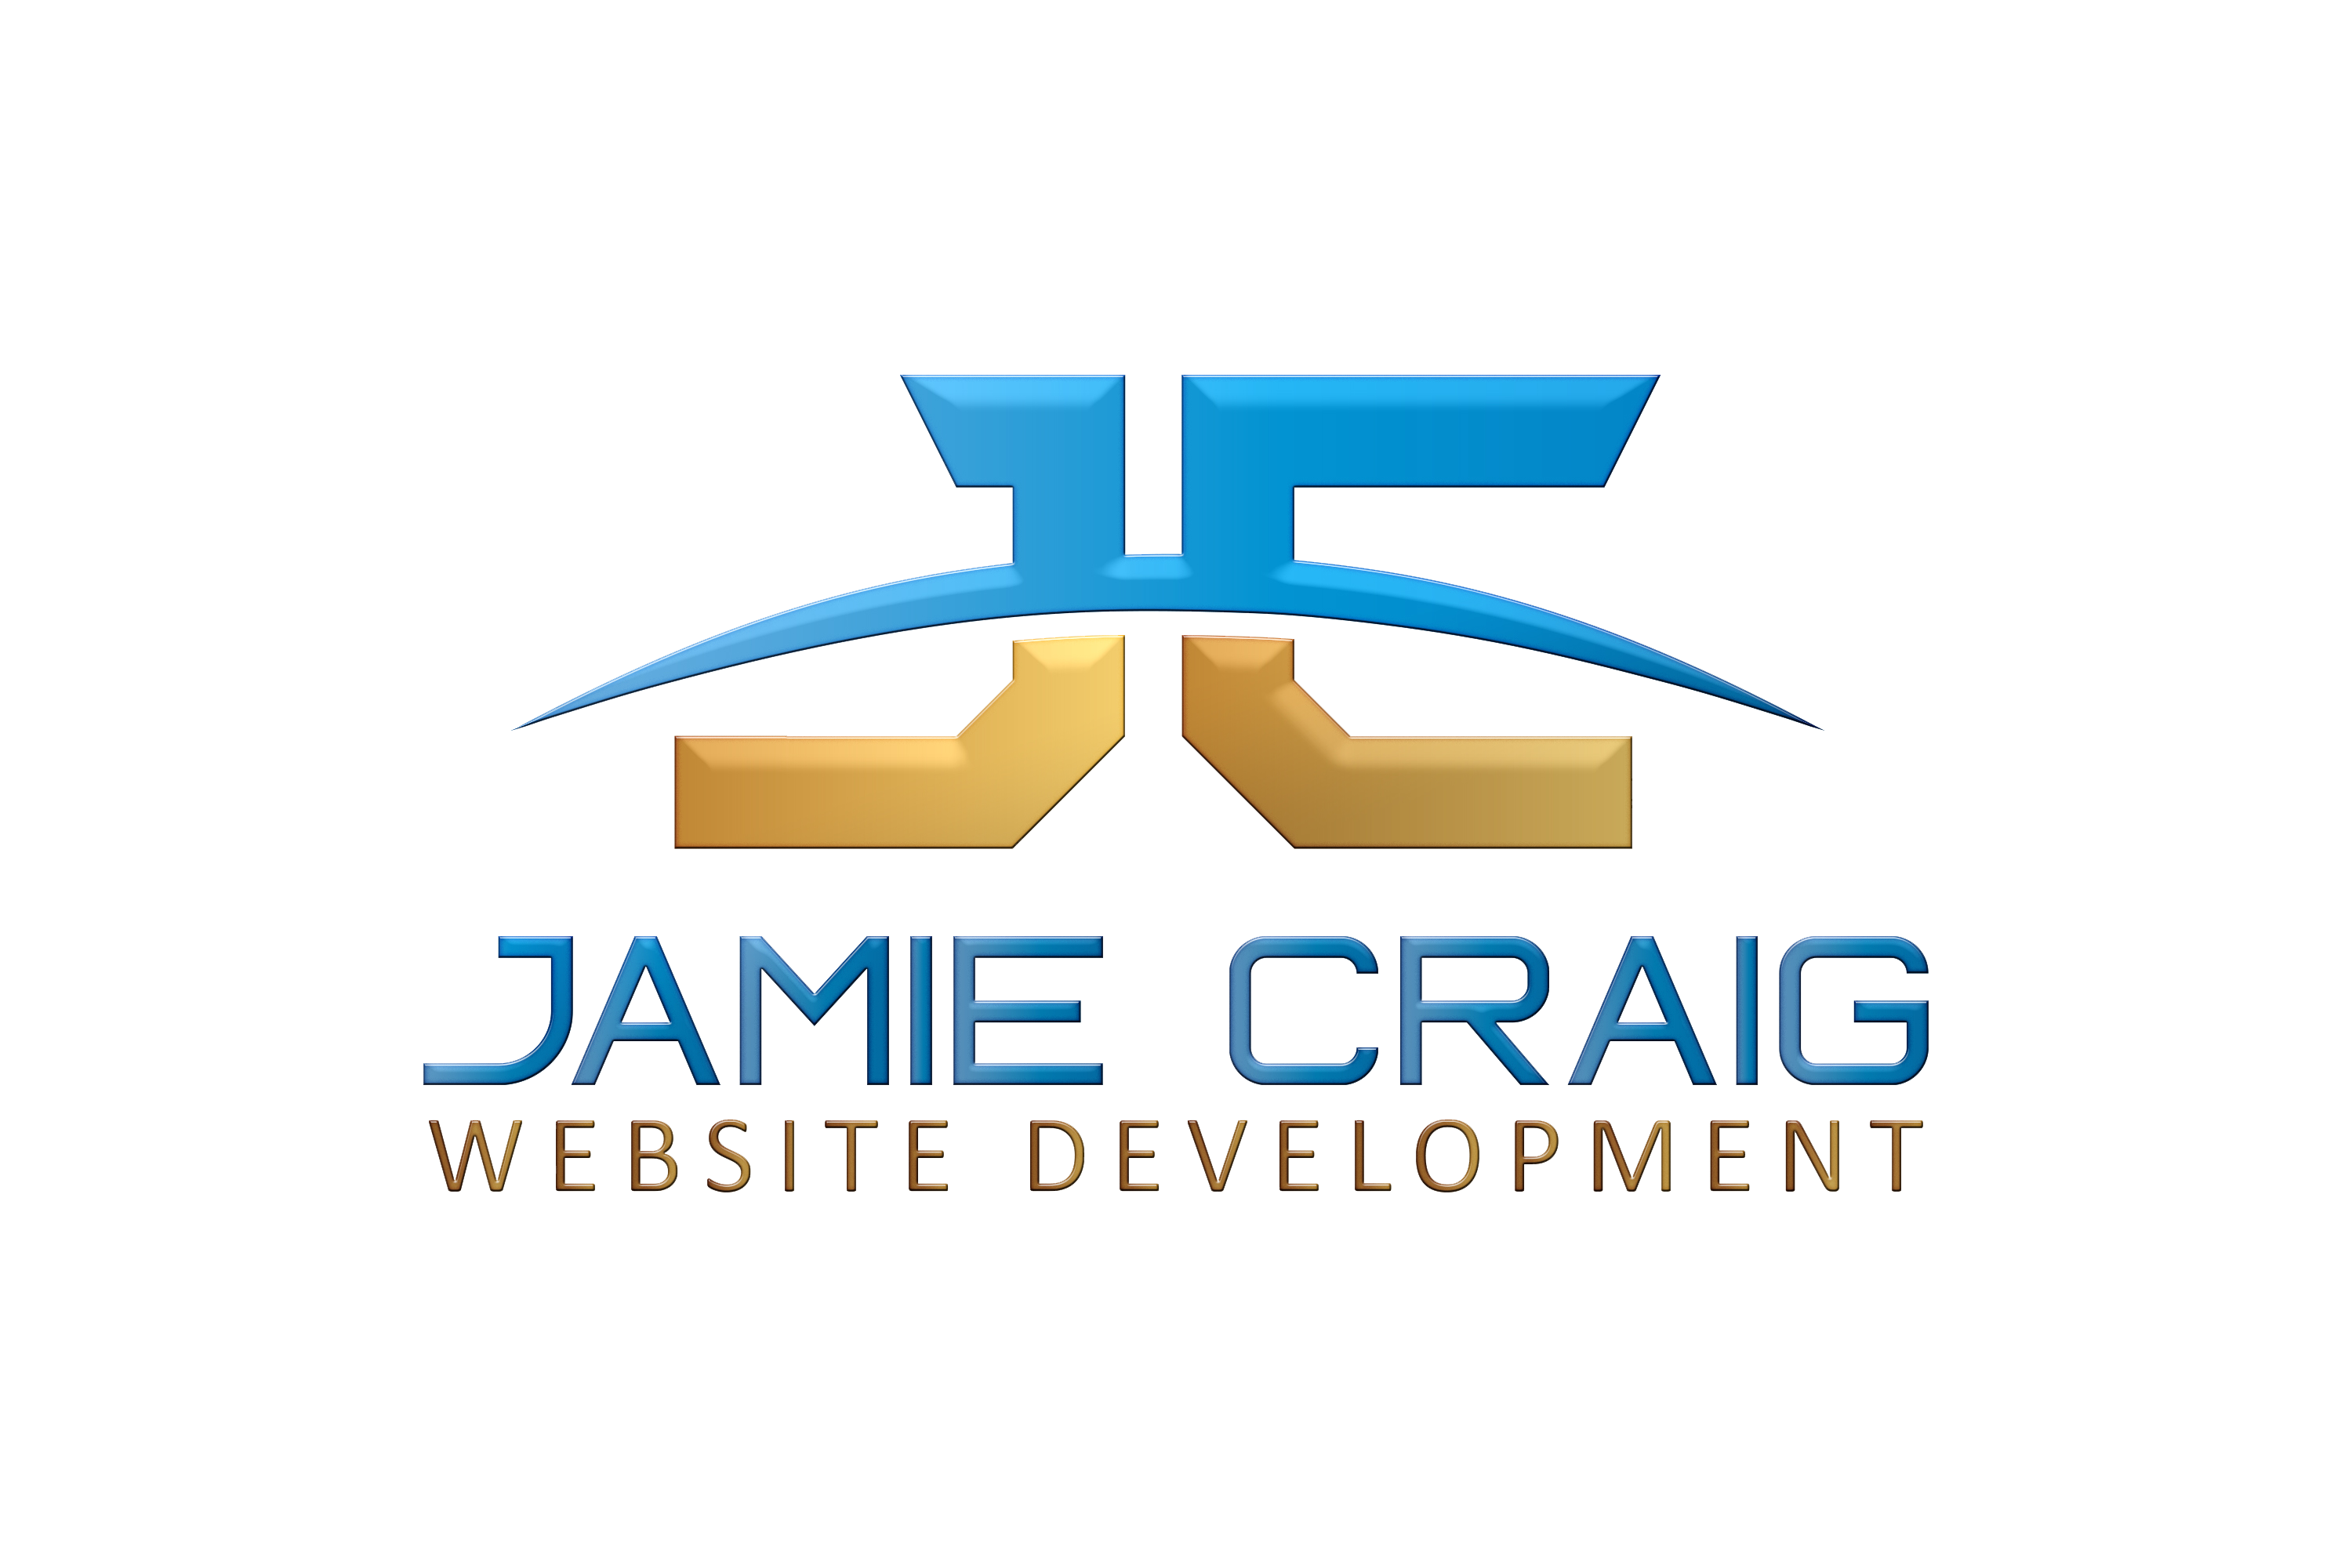 Jamie Craig Website Development